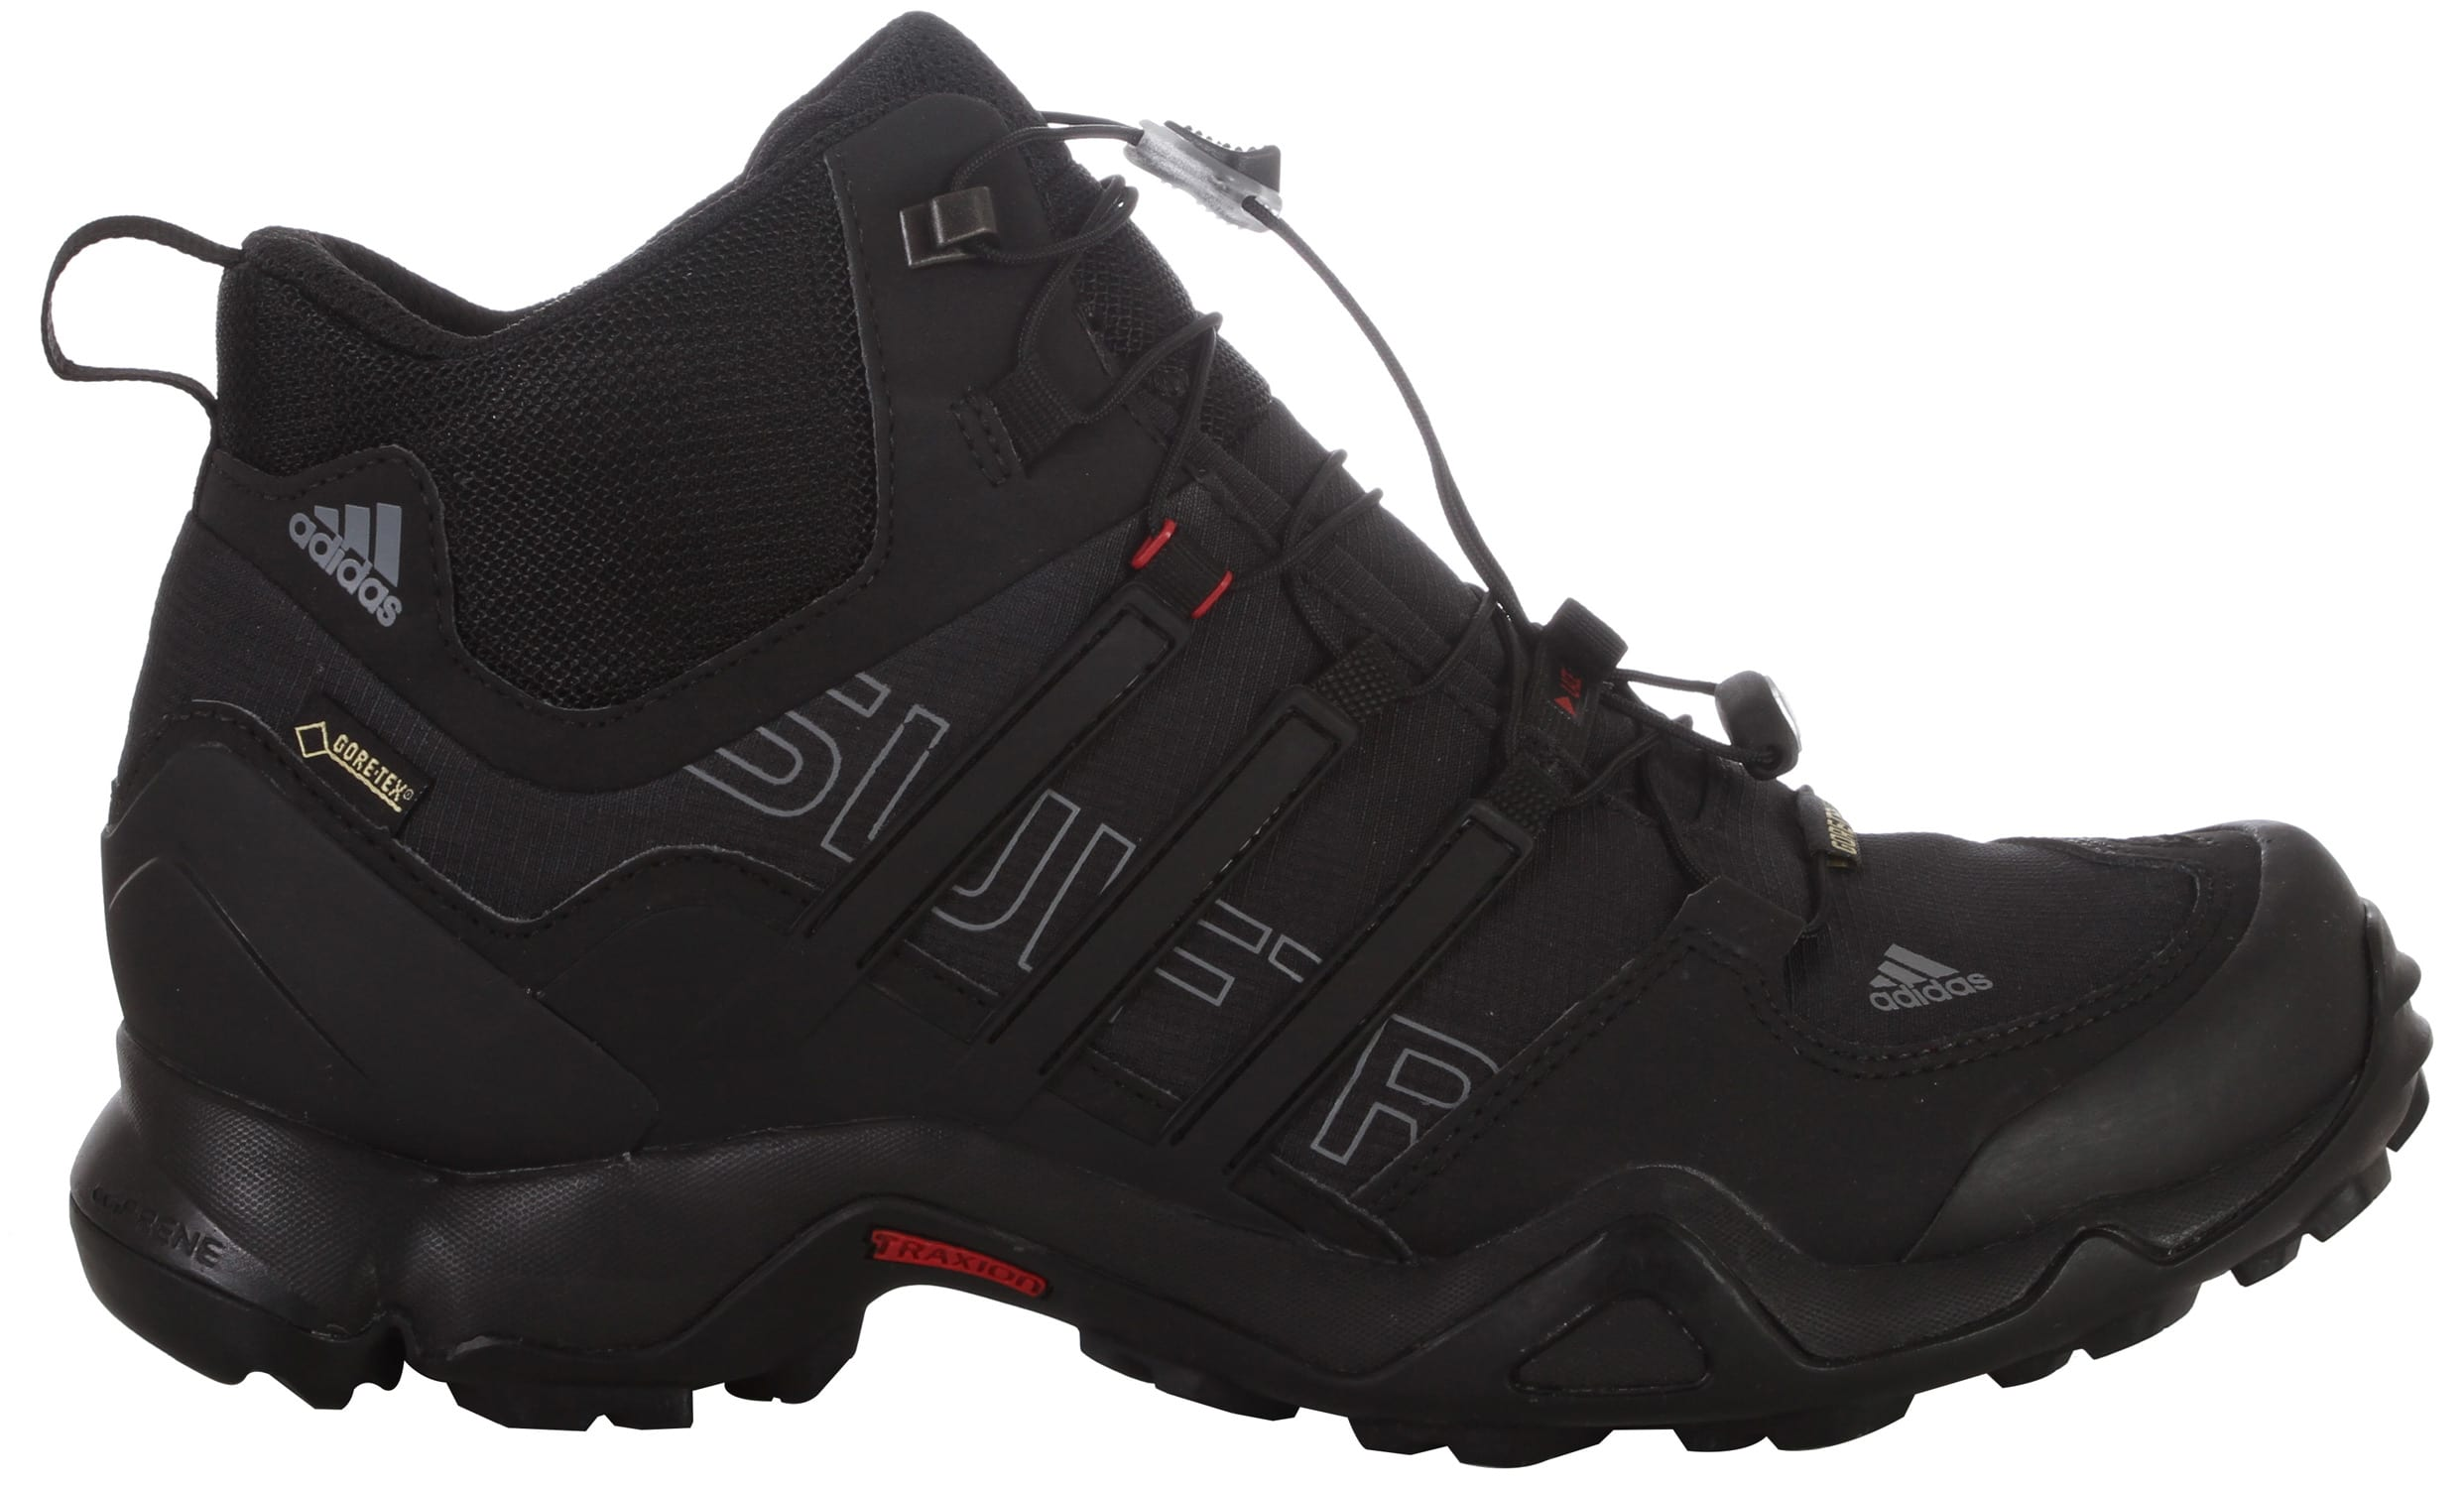 on sale adidas terrex swift r mid gtx hiking boots up to. Black Bedroom Furniture Sets. Home Design Ideas